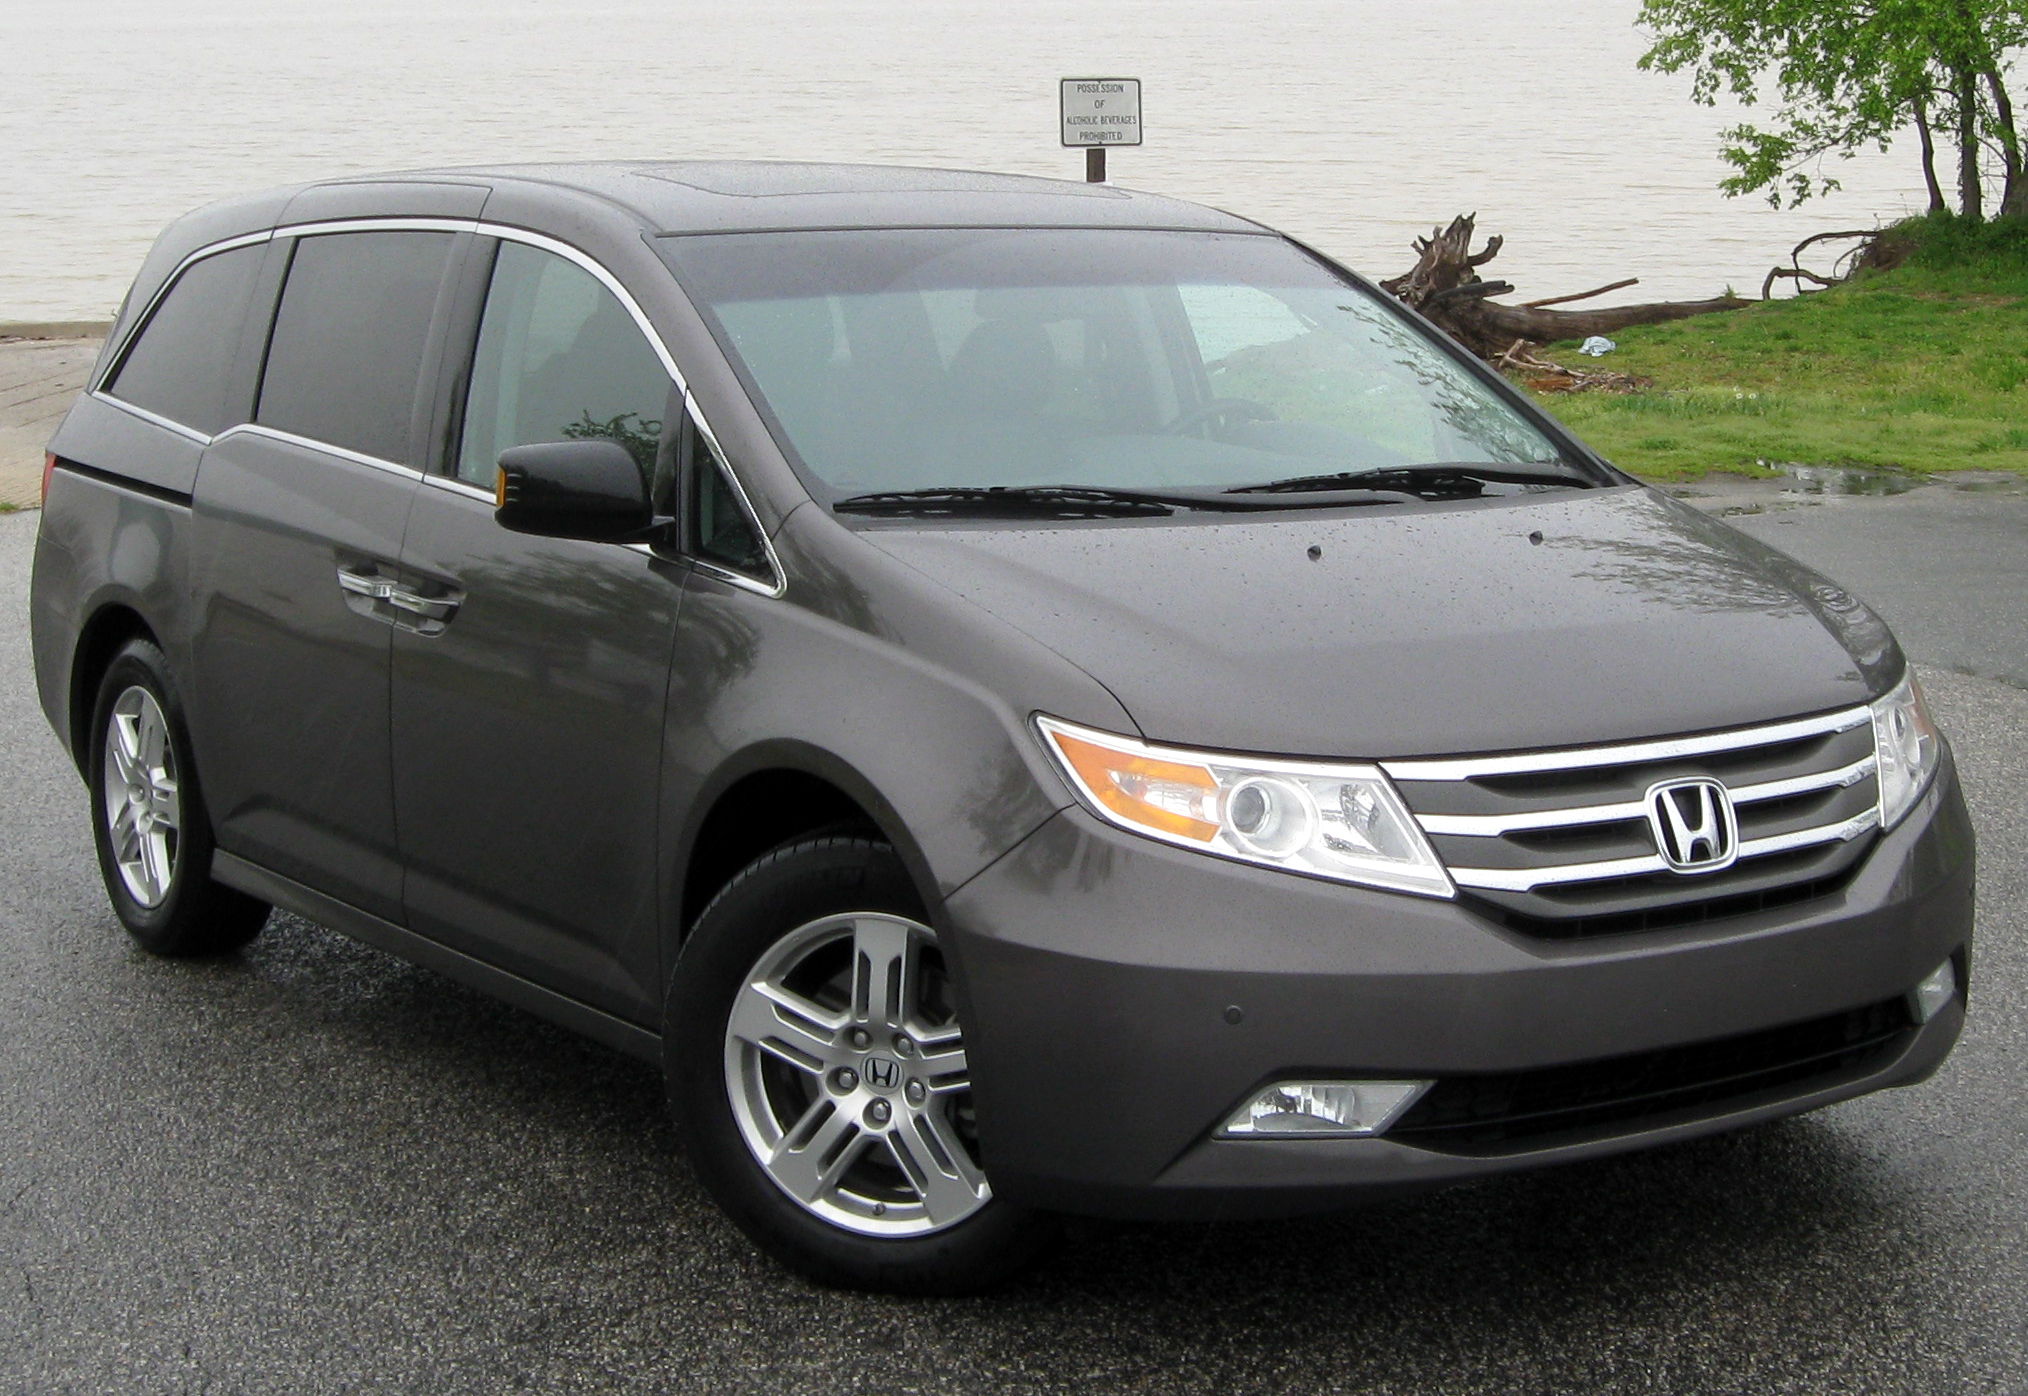 Hyundai Sonata Radio Wiring Diagram moreover 2006 Accord Cigarette Lighters Not Working Honda Accord Forum Intended For Fuse Box Not Working in addition Honda Odyssey Fuse Box as well Watch moreover 2005 Honda Accord Fuse Box. on honda odyssey wiring diagram